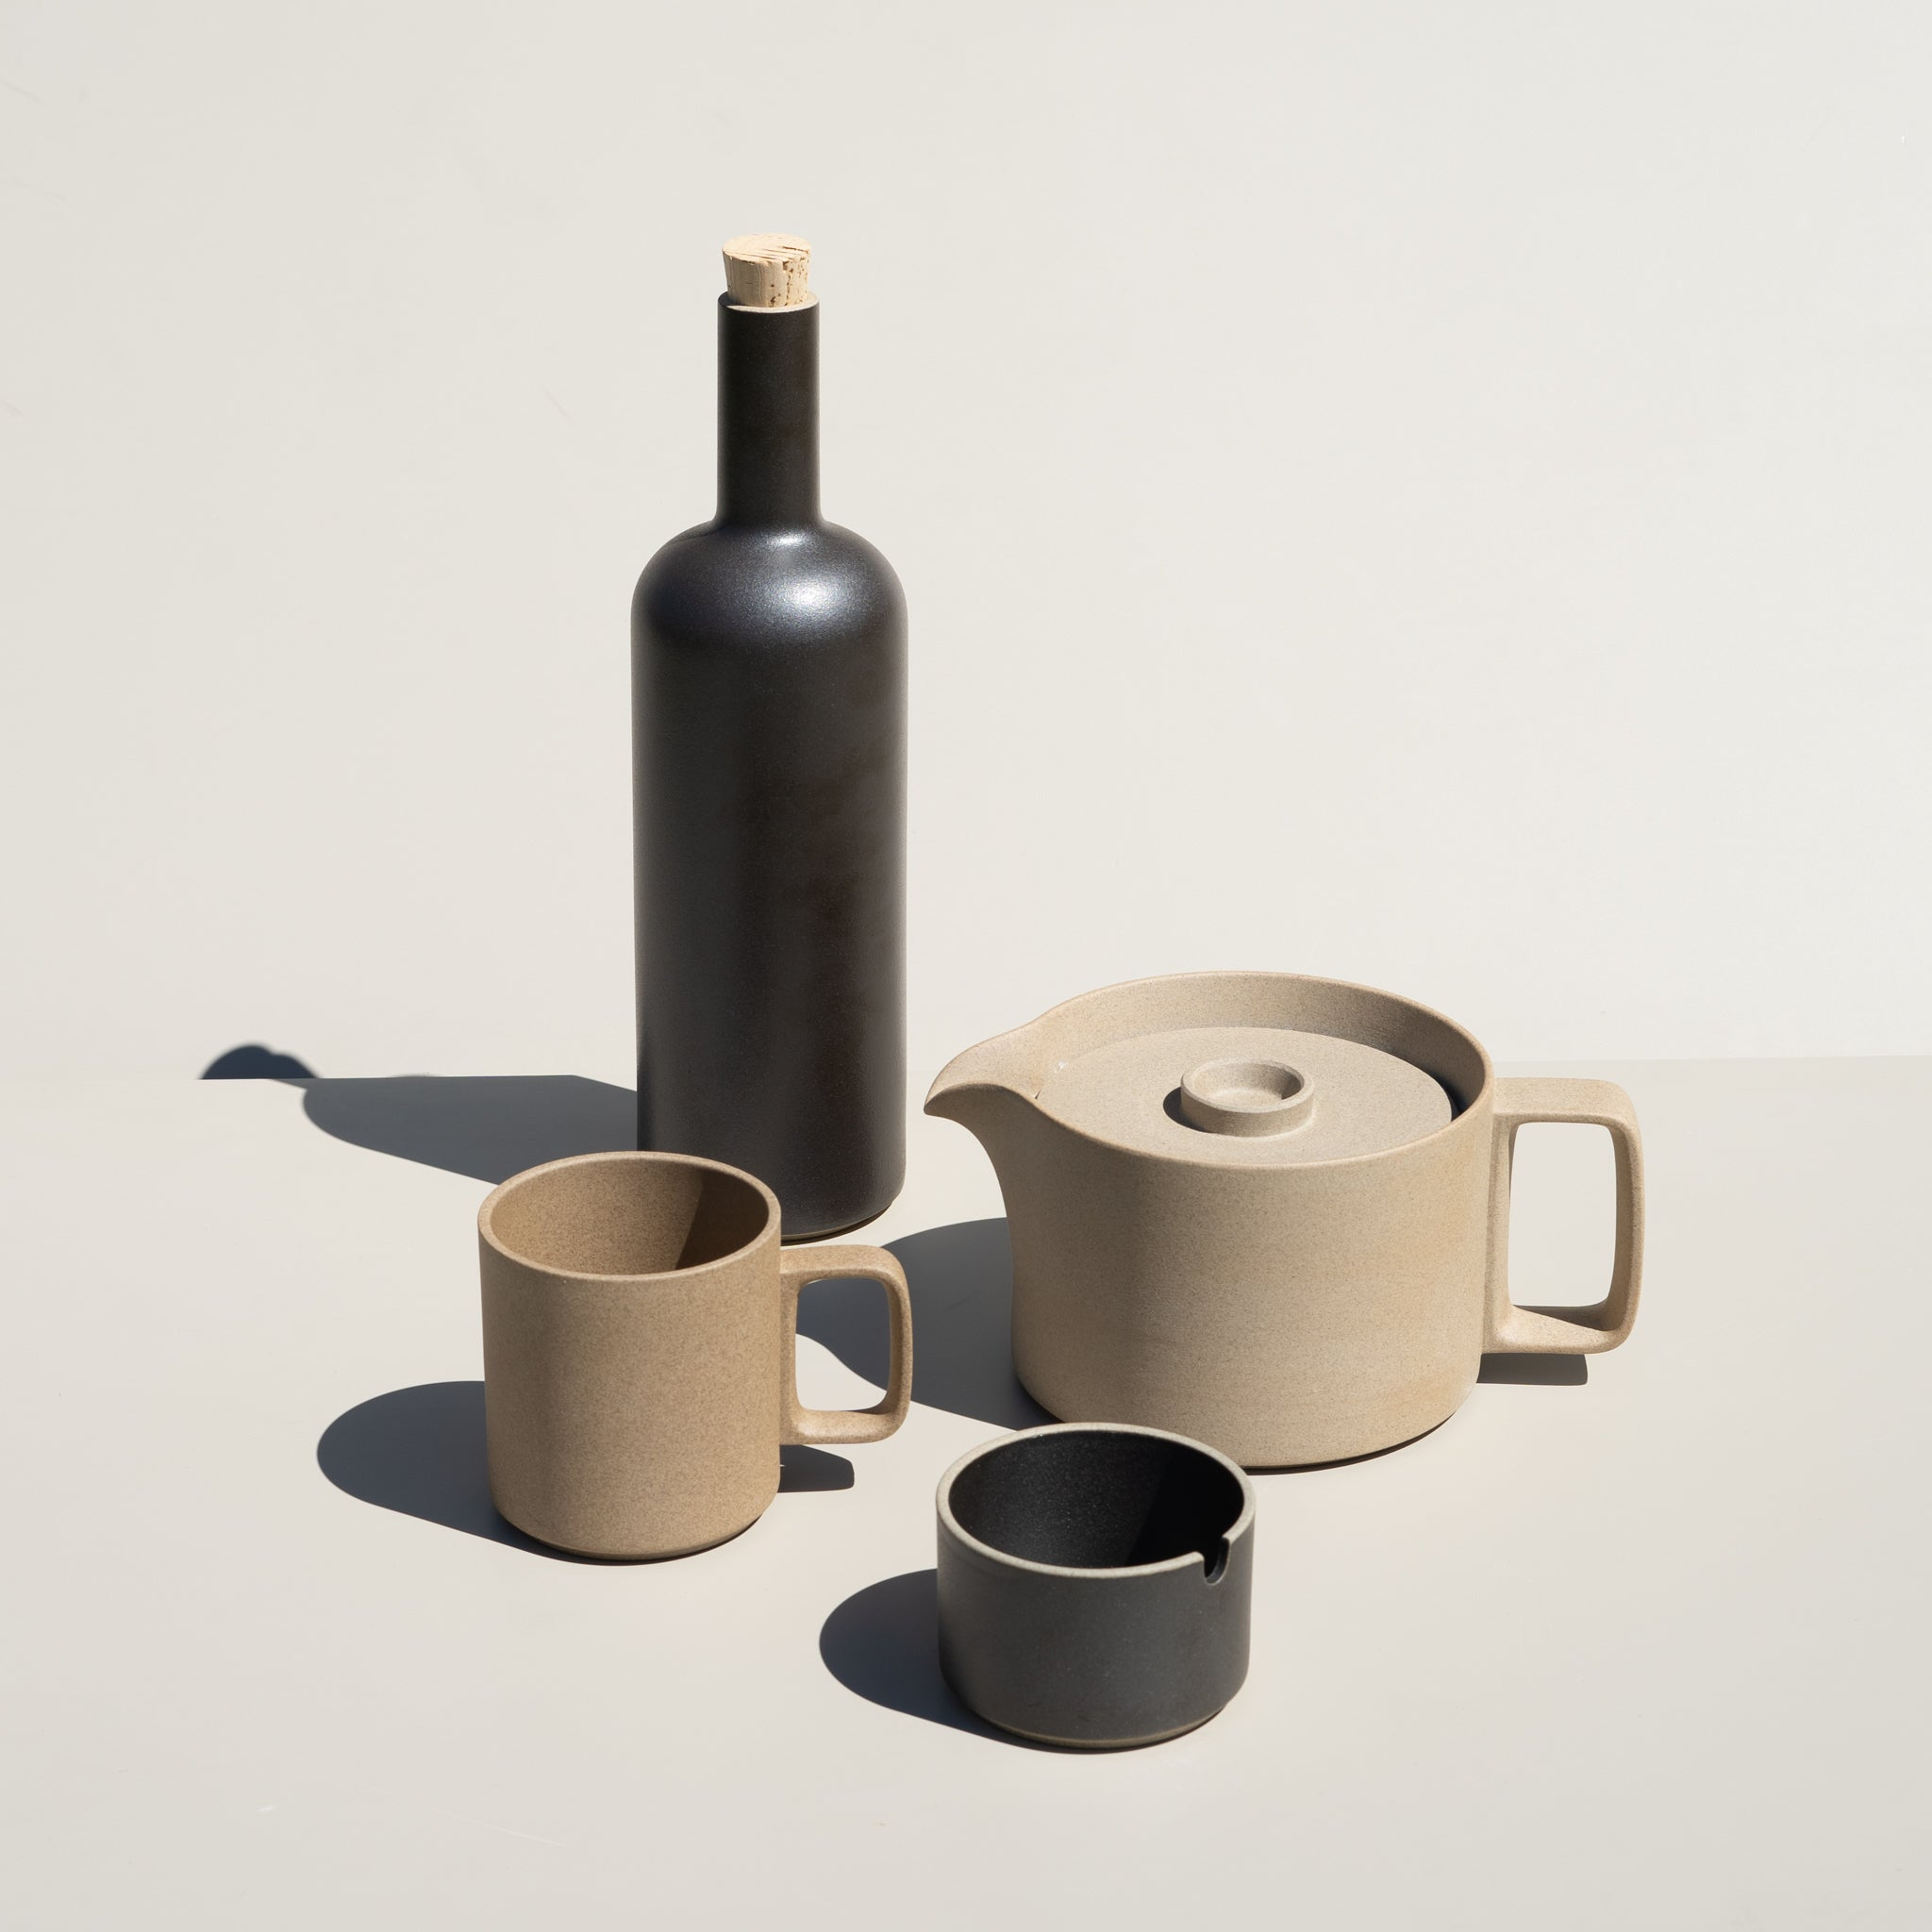 Hasami Porcelain dinnerware at Commonplace Design Shop.